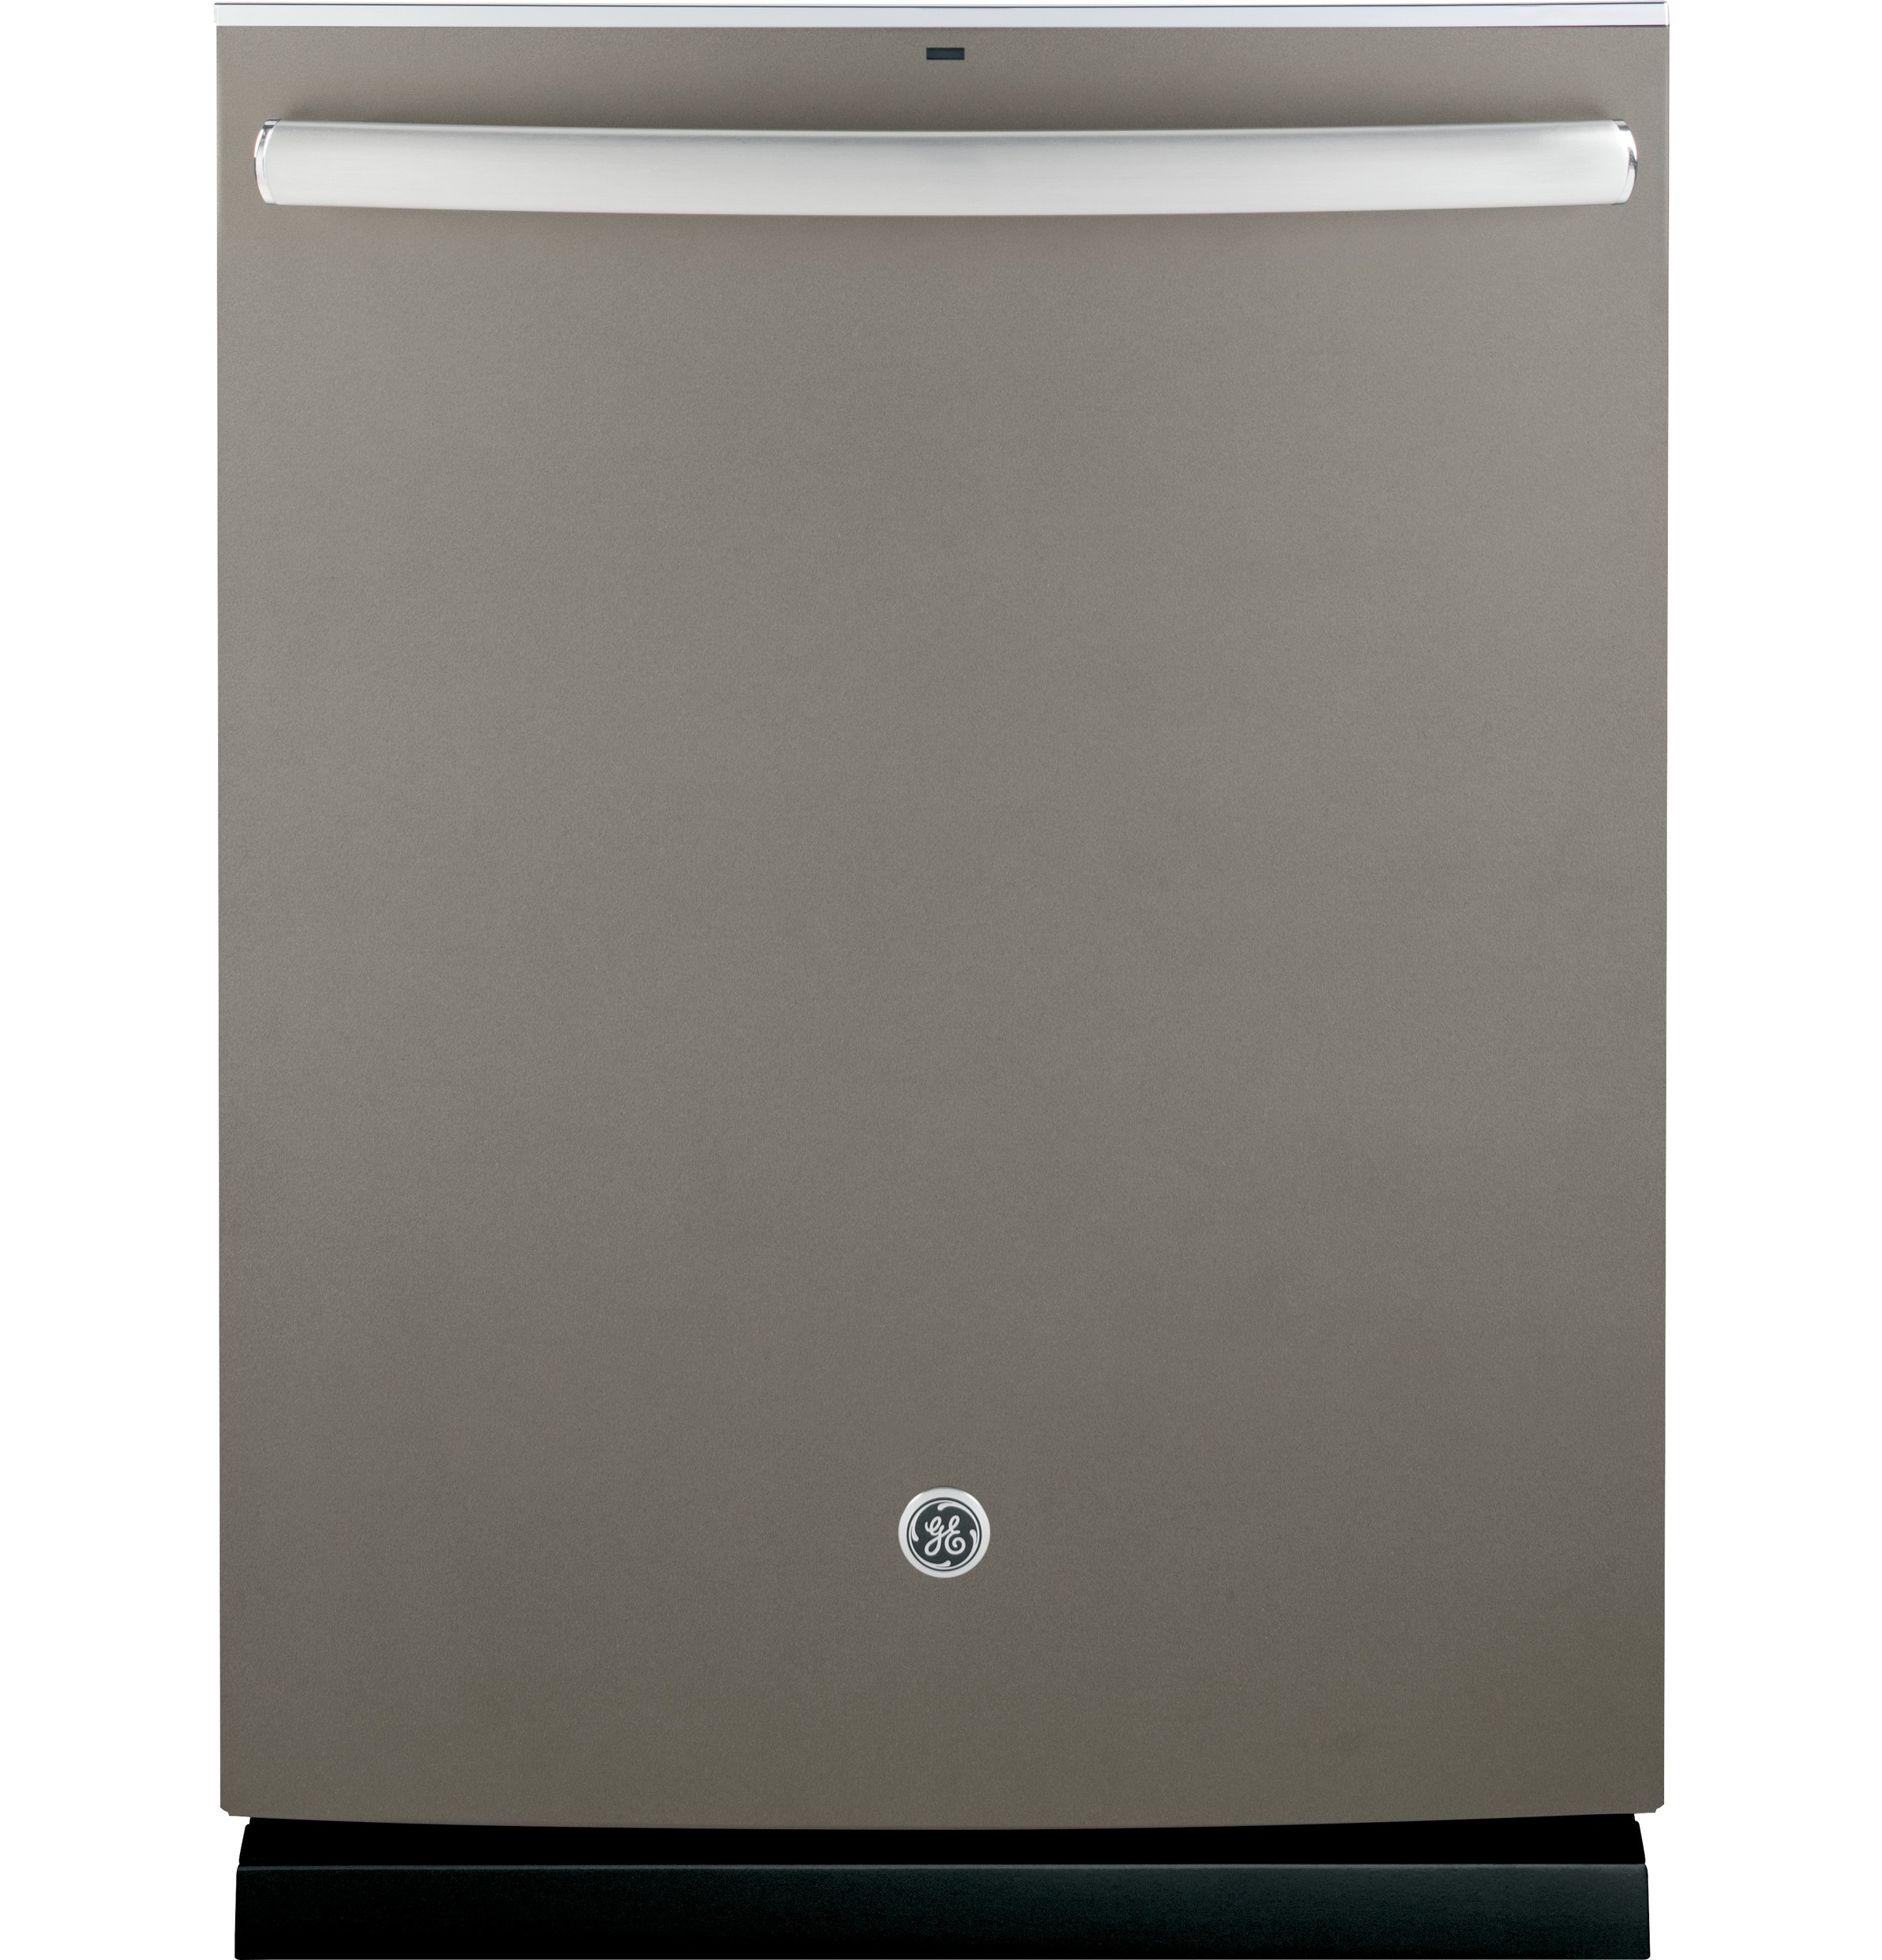 Ge Appliance Customer Service 800 Adora Series By Gear Stainless Steel Interior Dishwasher With